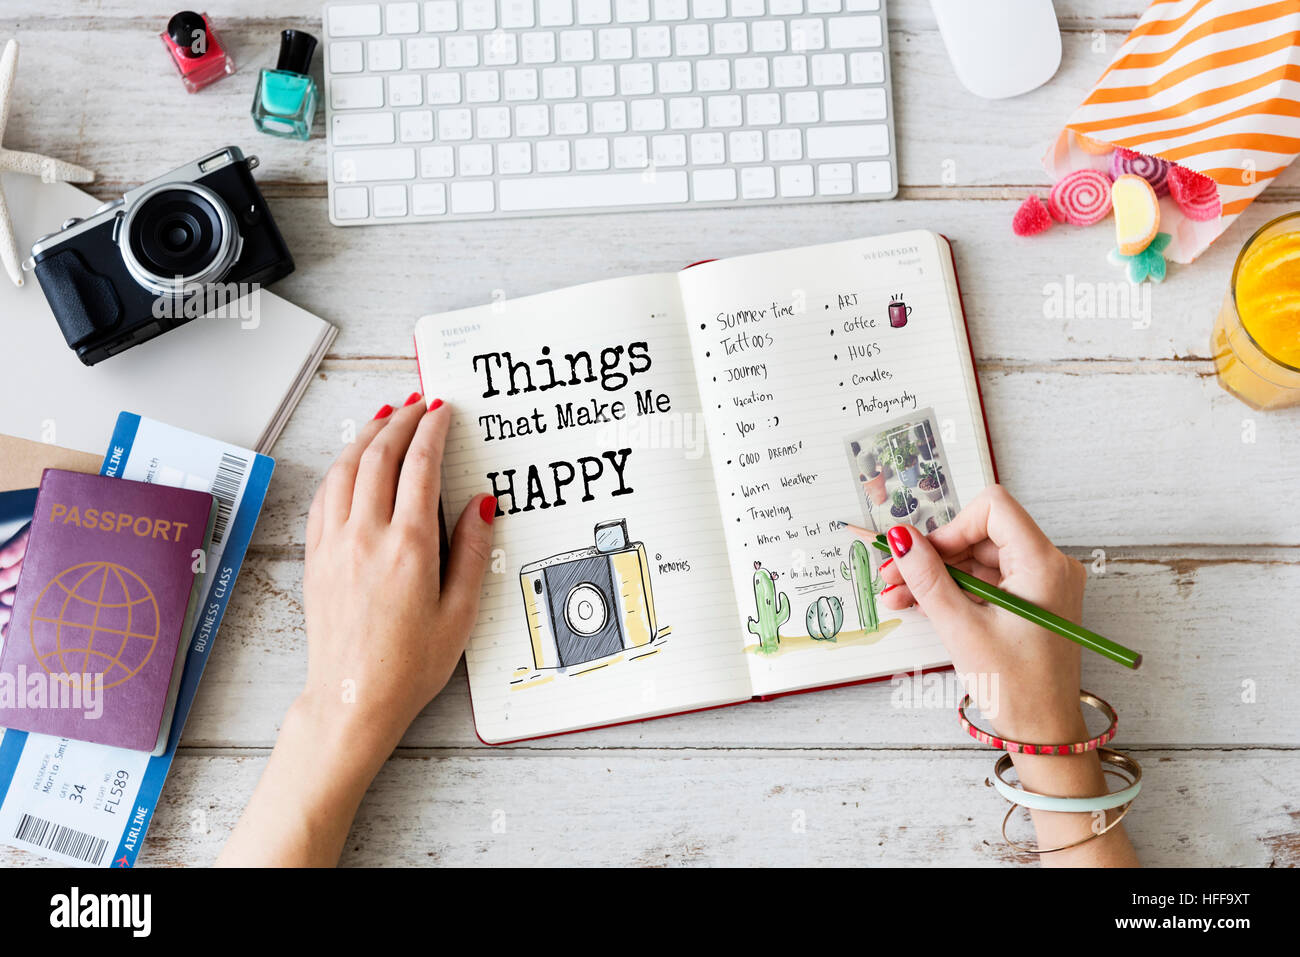 Things That Make Me Happy Concept - Stock Image